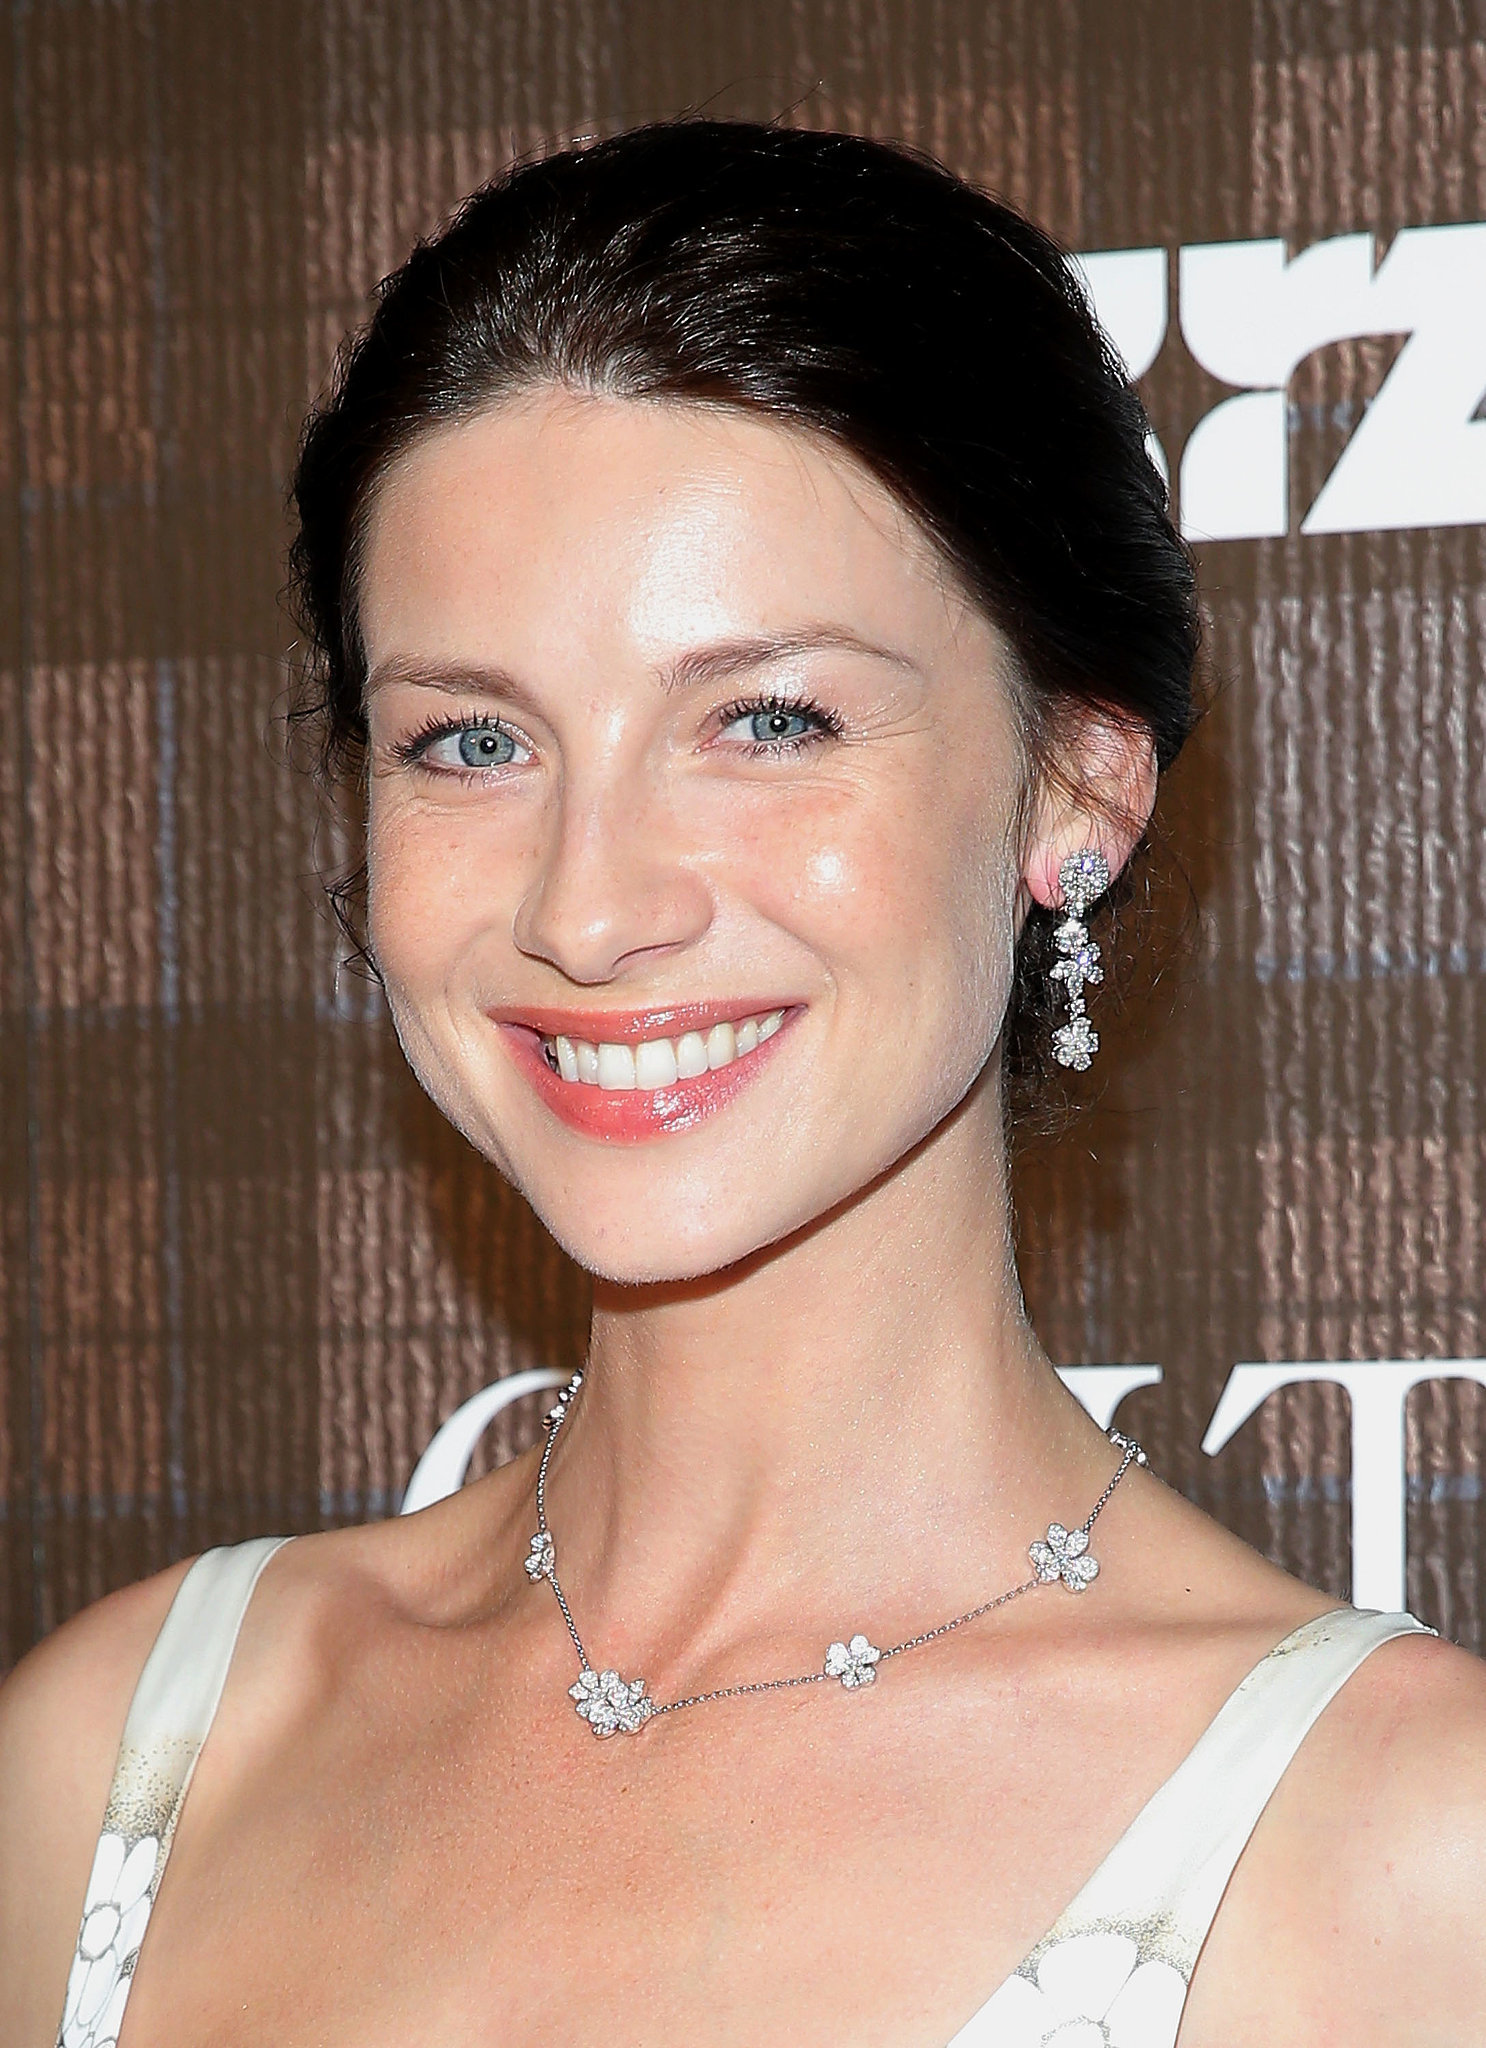 The 37-year old daughter of father (?) and mother(?), 178 cm tall Caitriona Balfe in 2017 photo